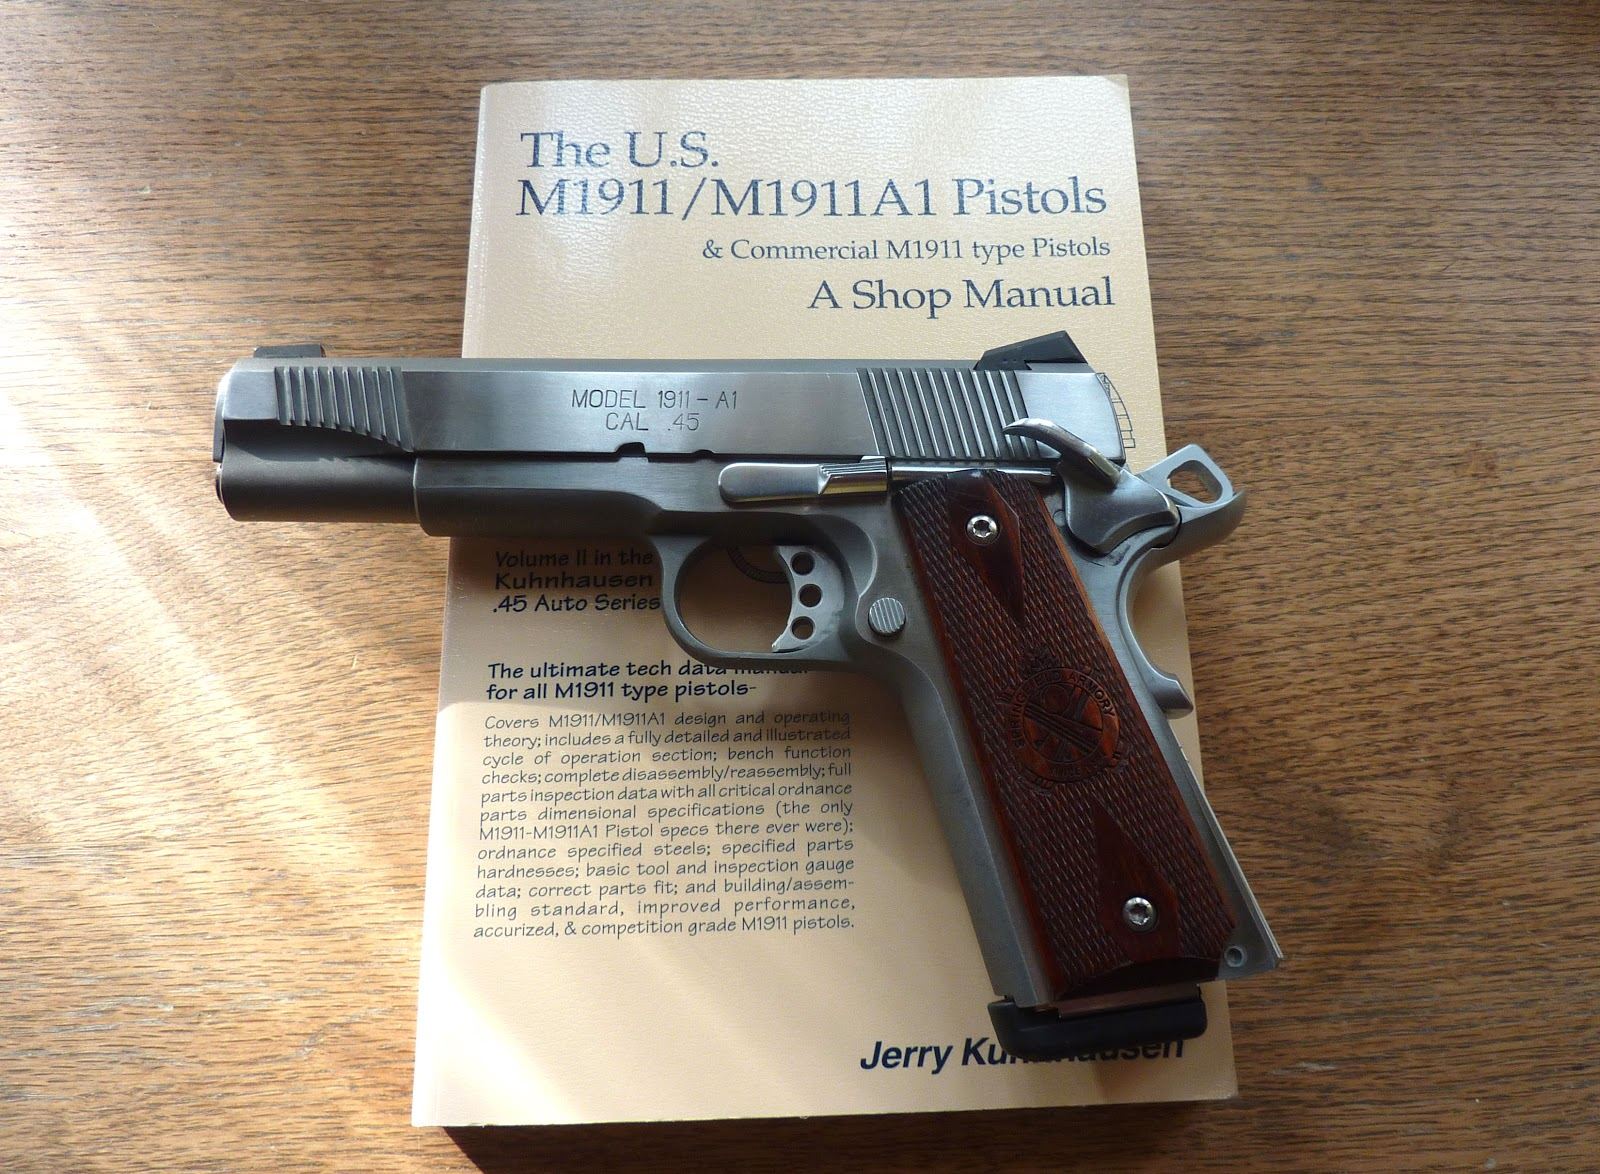 m1911 pistol essay The m1911 is a single-action, semi-automatic, magazine-fed, recoil-operated pistol chambered for the 45 acp cartridge it served as the standard-issue sidearm for the united states armed forces from 1911 to 1986.